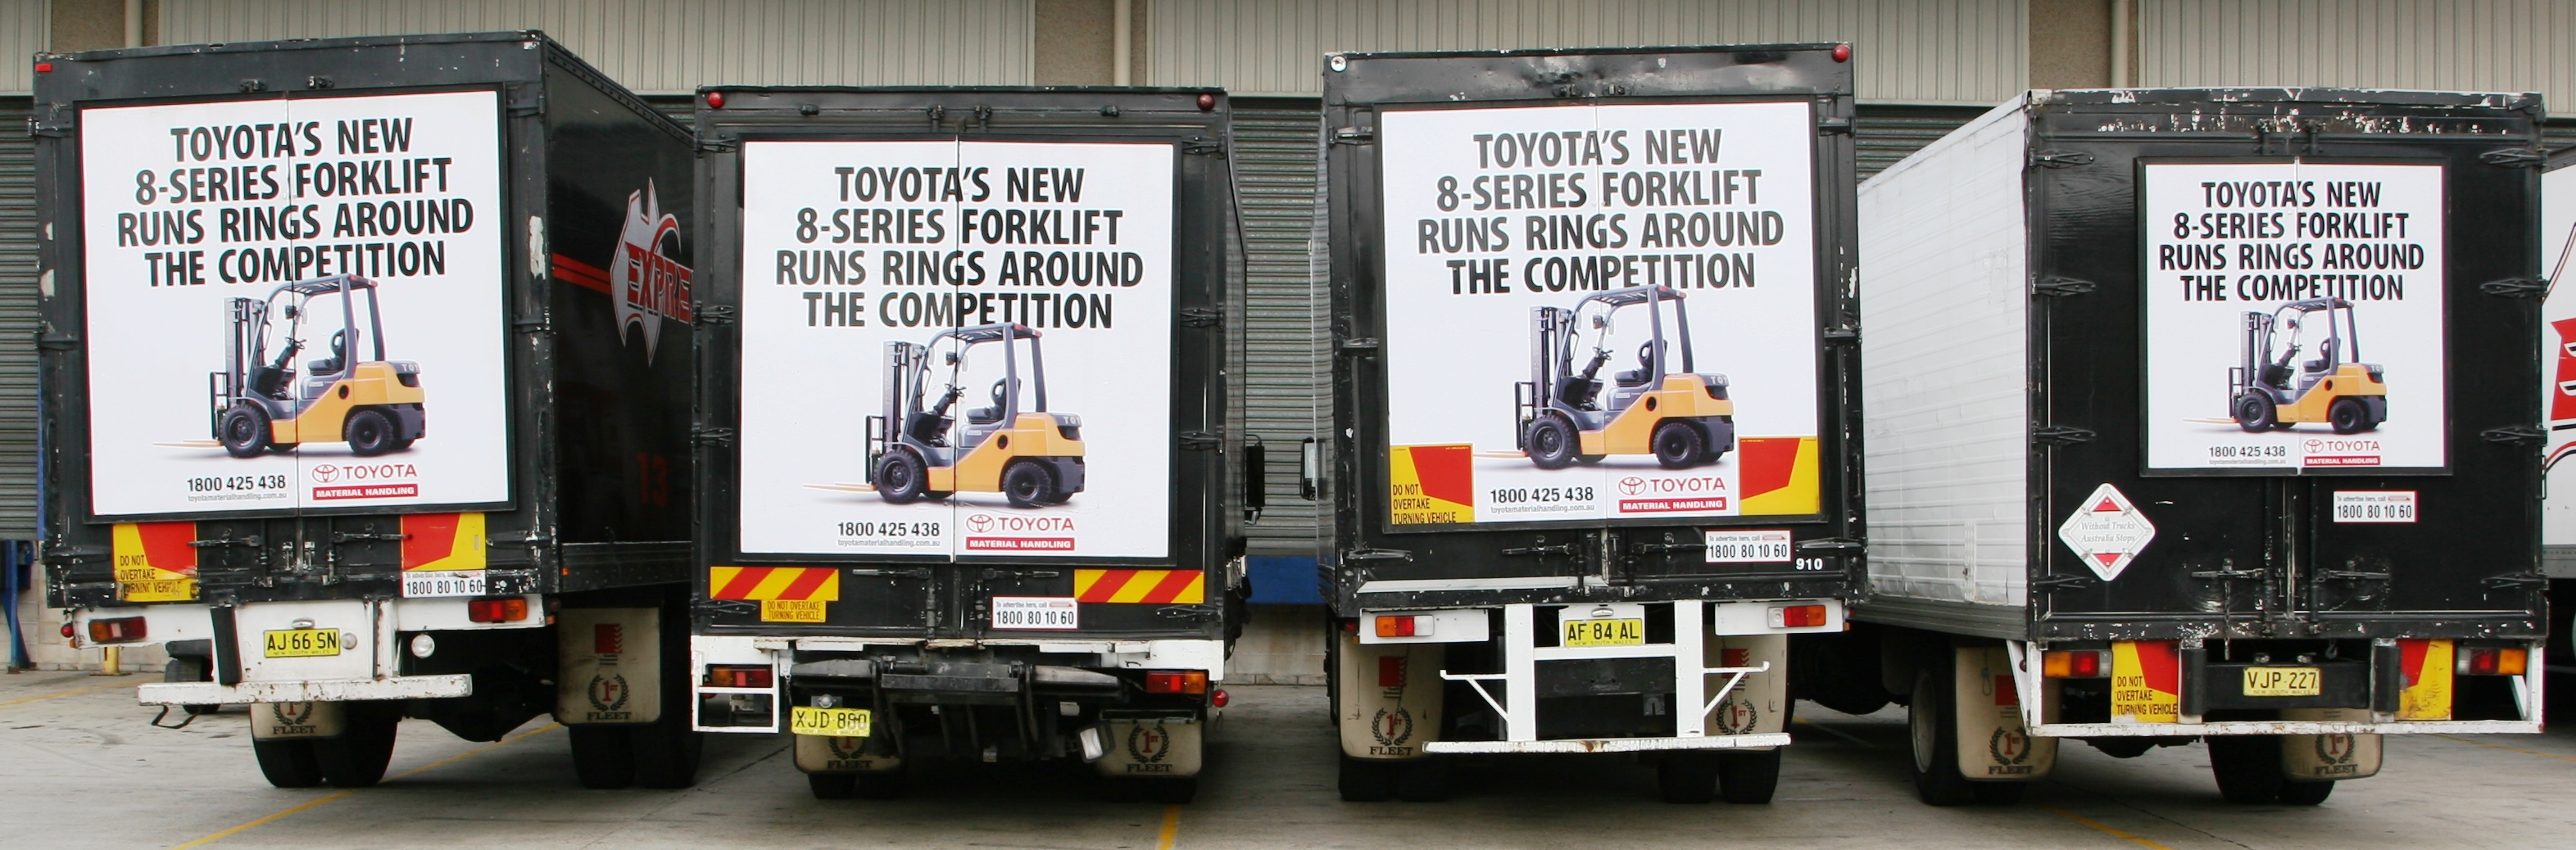 Truck advertising. Four of a kind - TruckBacks lined up for TMHA (Toyota Material Handling Australia) all on First Fleet vehicles. Toyota 8 series forklift.